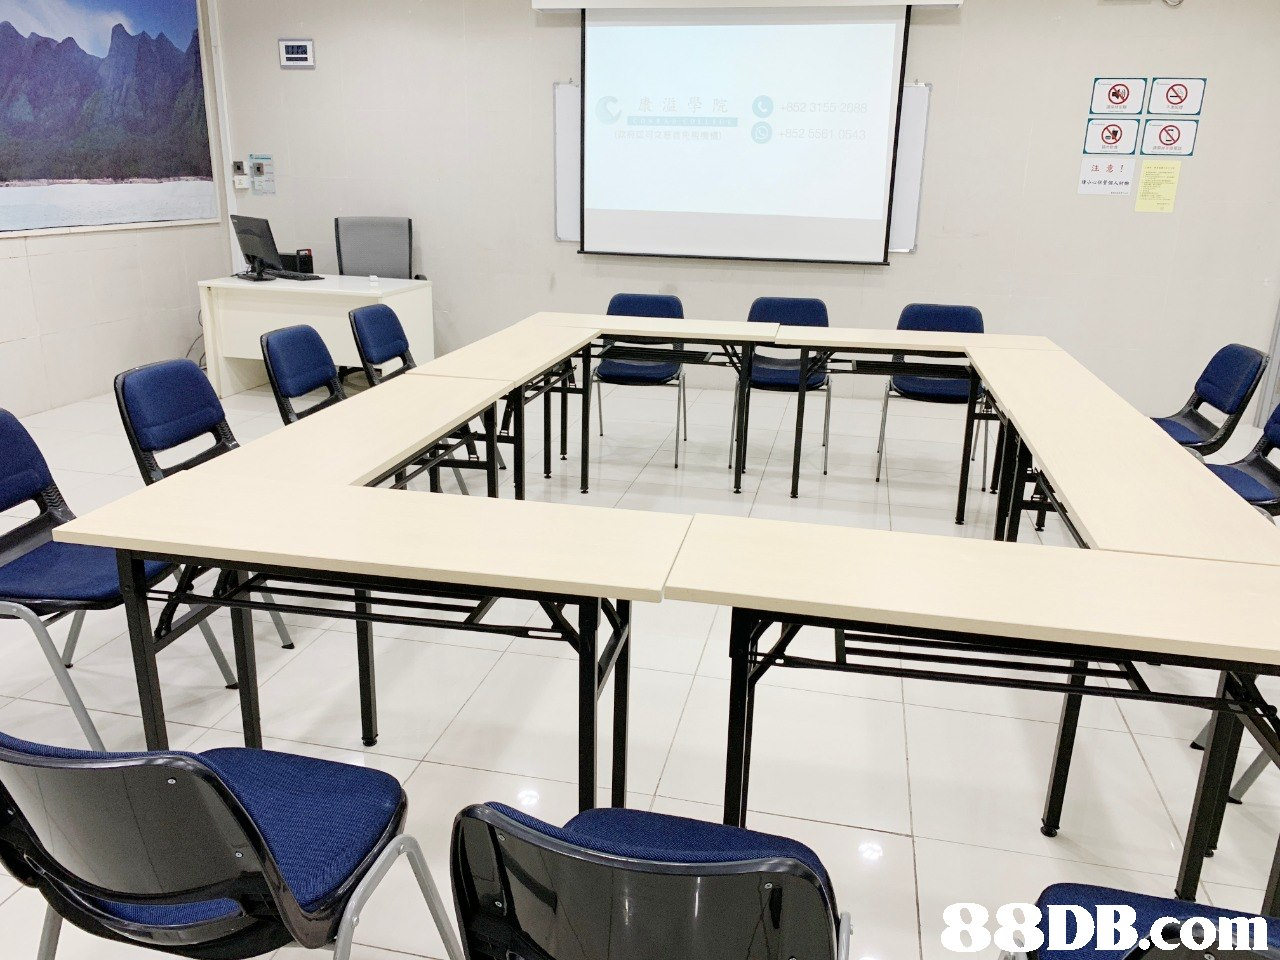 注意! 8 DB.com  Room,Classroom,Conference hall,Table,Furniture